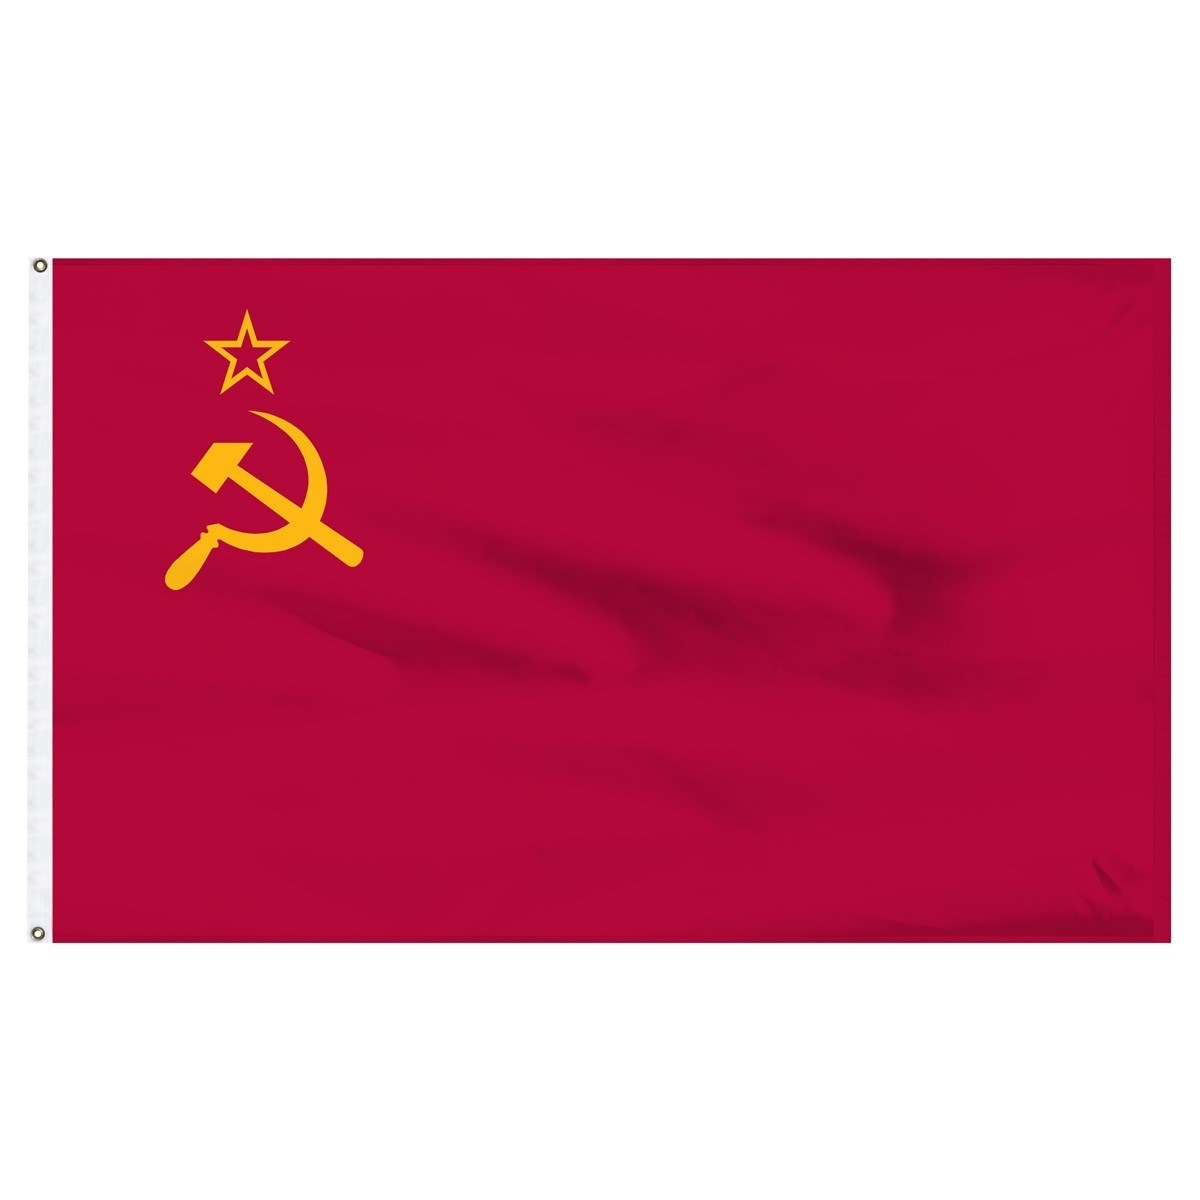 USSR 2' x 3' Outdoor Nylon Flag